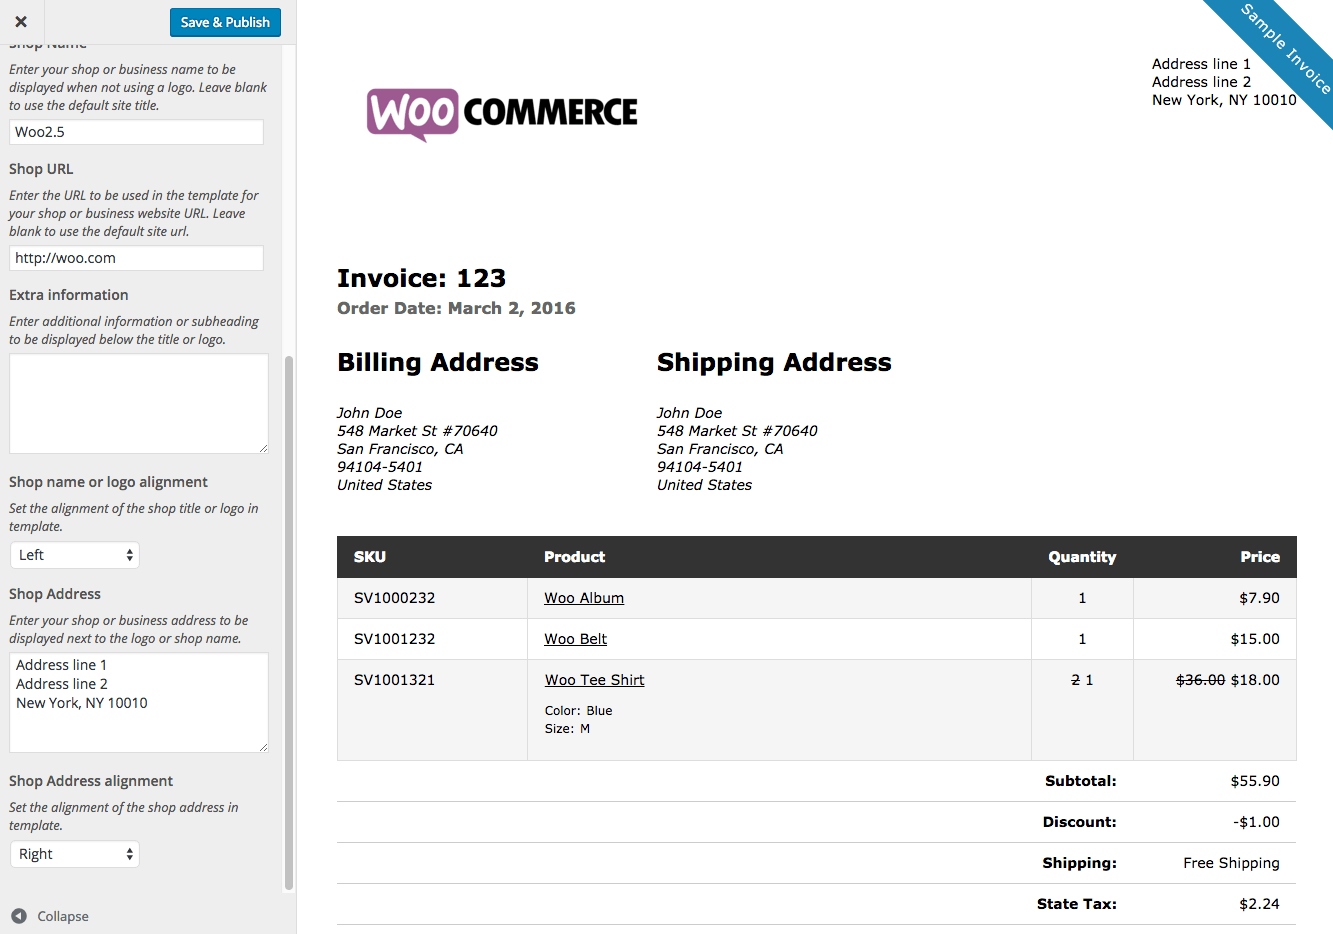 Picnictoimpeachus  Surprising Woocommerce Print Invoices Amp Packing Lists  Woocommerce Docs With Foxy Woocommerce Print Invoices  Packing Lists Customizer With Beauteous Trucking Invoices Also Free Printable Blank Invoices In Addition Invoice Template For Free And Ram Invoice Pricing As Well As Simple Invoice Example Additionally Google Template Invoice From Docswoocommercecom With Picnictoimpeachus  Foxy Woocommerce Print Invoices Amp Packing Lists  Woocommerce Docs With Beauteous Woocommerce Print Invoices  Packing Lists Customizer And Surprising Trucking Invoices Also Free Printable Blank Invoices In Addition Invoice Template For Free From Docswoocommercecom